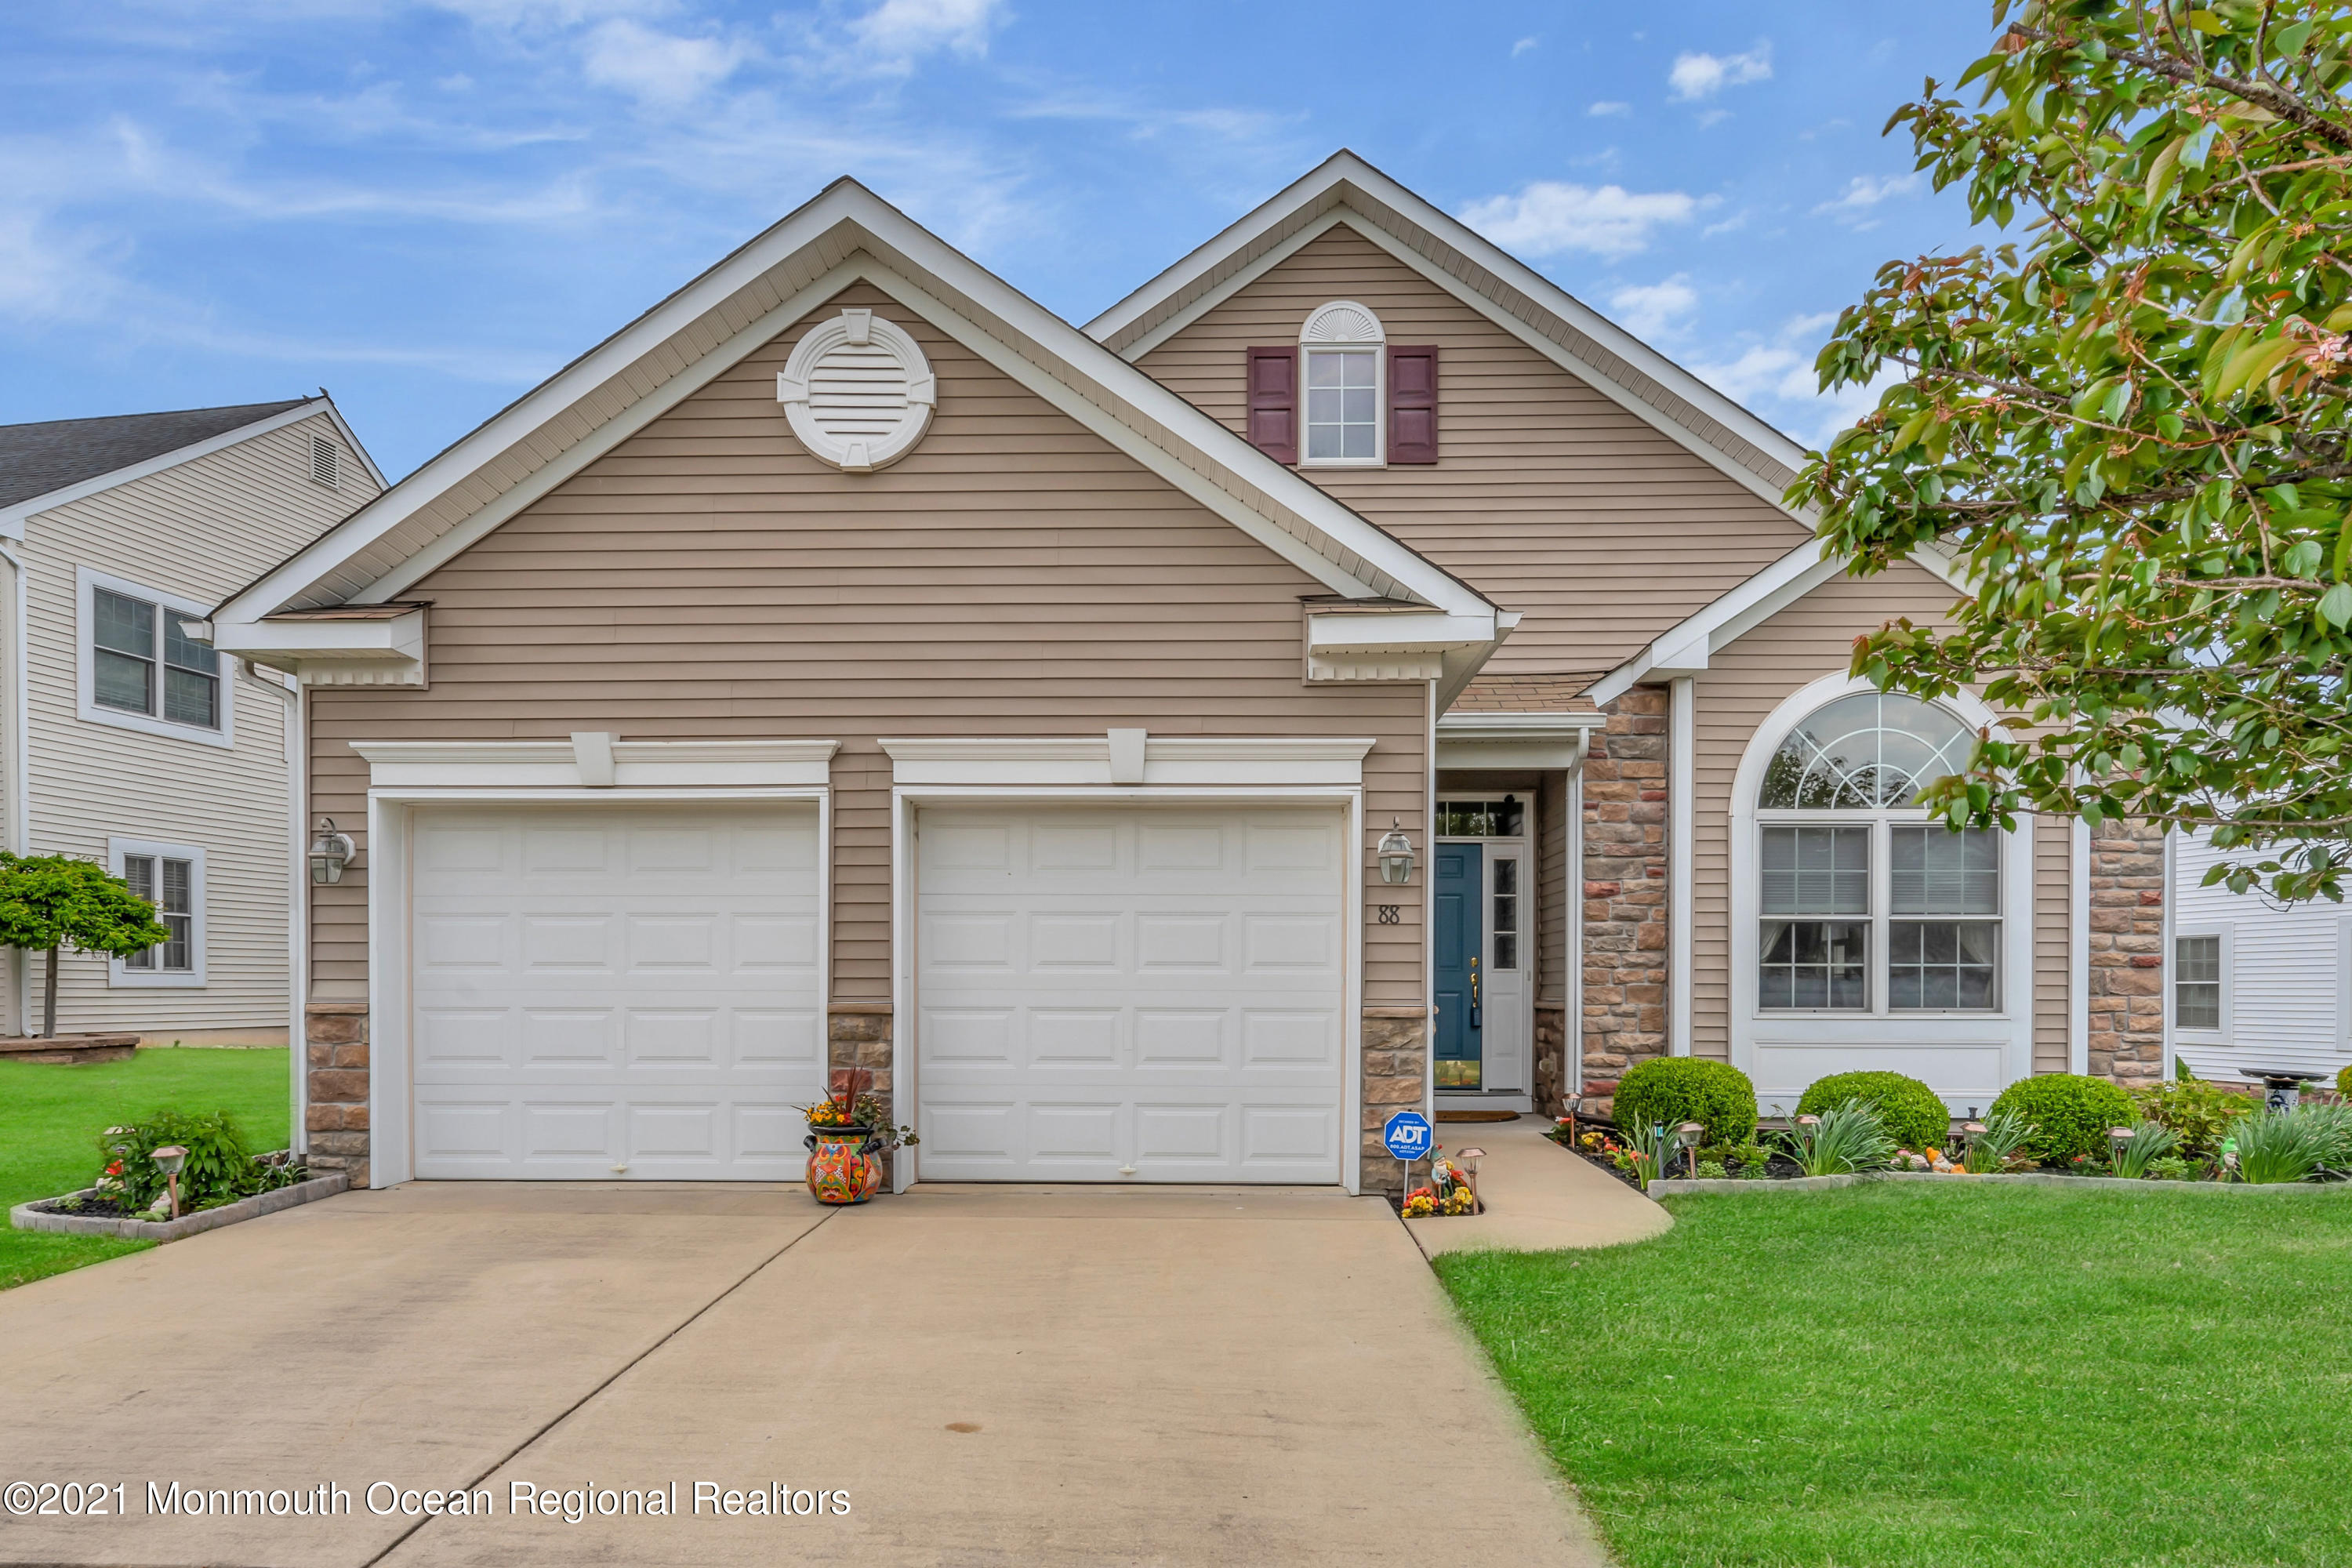 Greenbriar Oceanaire Golf & Country Club w/18 Hole Golf Course, Clubhouse, Pro Shop, In & Outdoor Pools, Fitness Ct, Restaurant with Pub & Much More. Two Bedroom & Two Full Baths. Southward Model with Gourmet Kitchen, Cherry Wood Cabinets, Stone Counter Tops, Tile Floors, Newly Installed S/S Appliances, Double Ovens and Cook Top Gas Range. Recessed Lighting. Dinette, Family Room w/Vaulted Ceiling, Living Rm, Dining Rm, Sunroom w/Tile Floors & Sliding Door to Outside Patio. Master Bedroom w/Full Bath & Walk-in Closet. Master Bath w/High Double Sink Vanity, Soaking Tub & Stall Shower. Window Shades. Washer & Dryer Stay with Home. Walk-up Storage Over 2 Car Garage. Paver Outside Patio. This Home Is Immaculate. YOUR NOT JUST BUYING A HOME, YOUR BUYING A LIFESTYLE